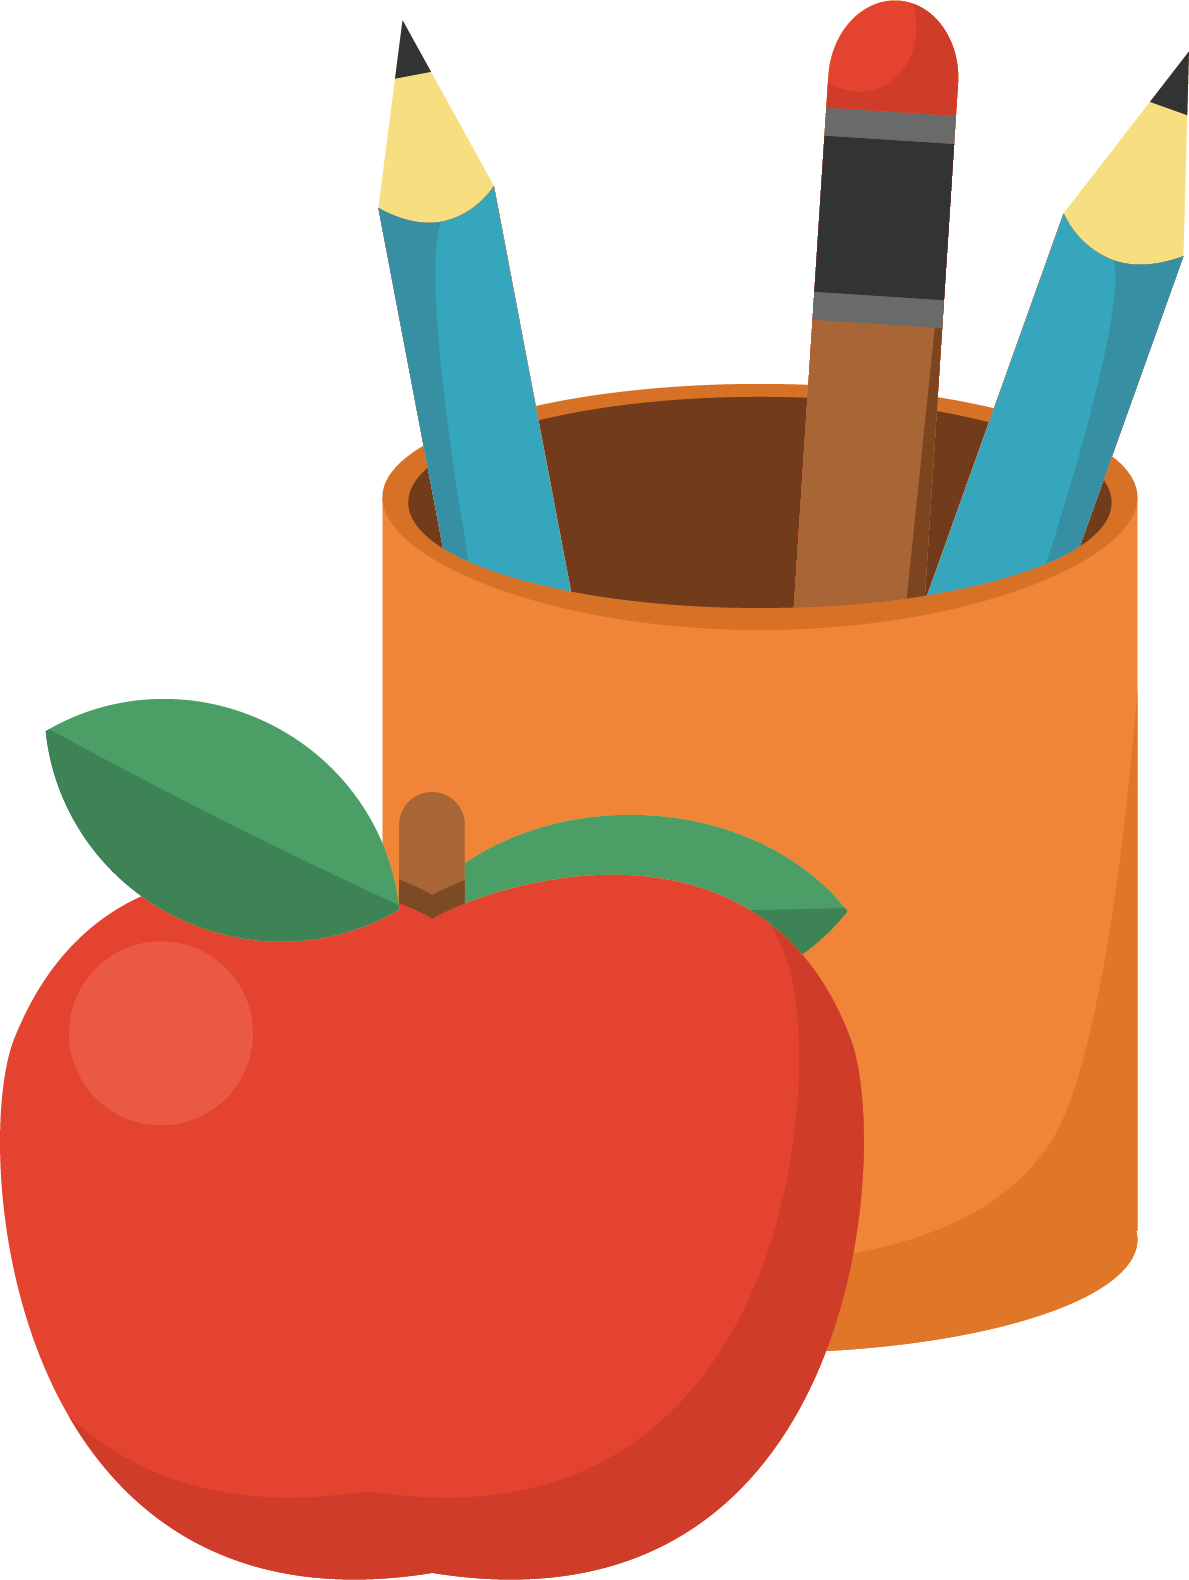 Produce vector illustration. Pencil brush pot orange